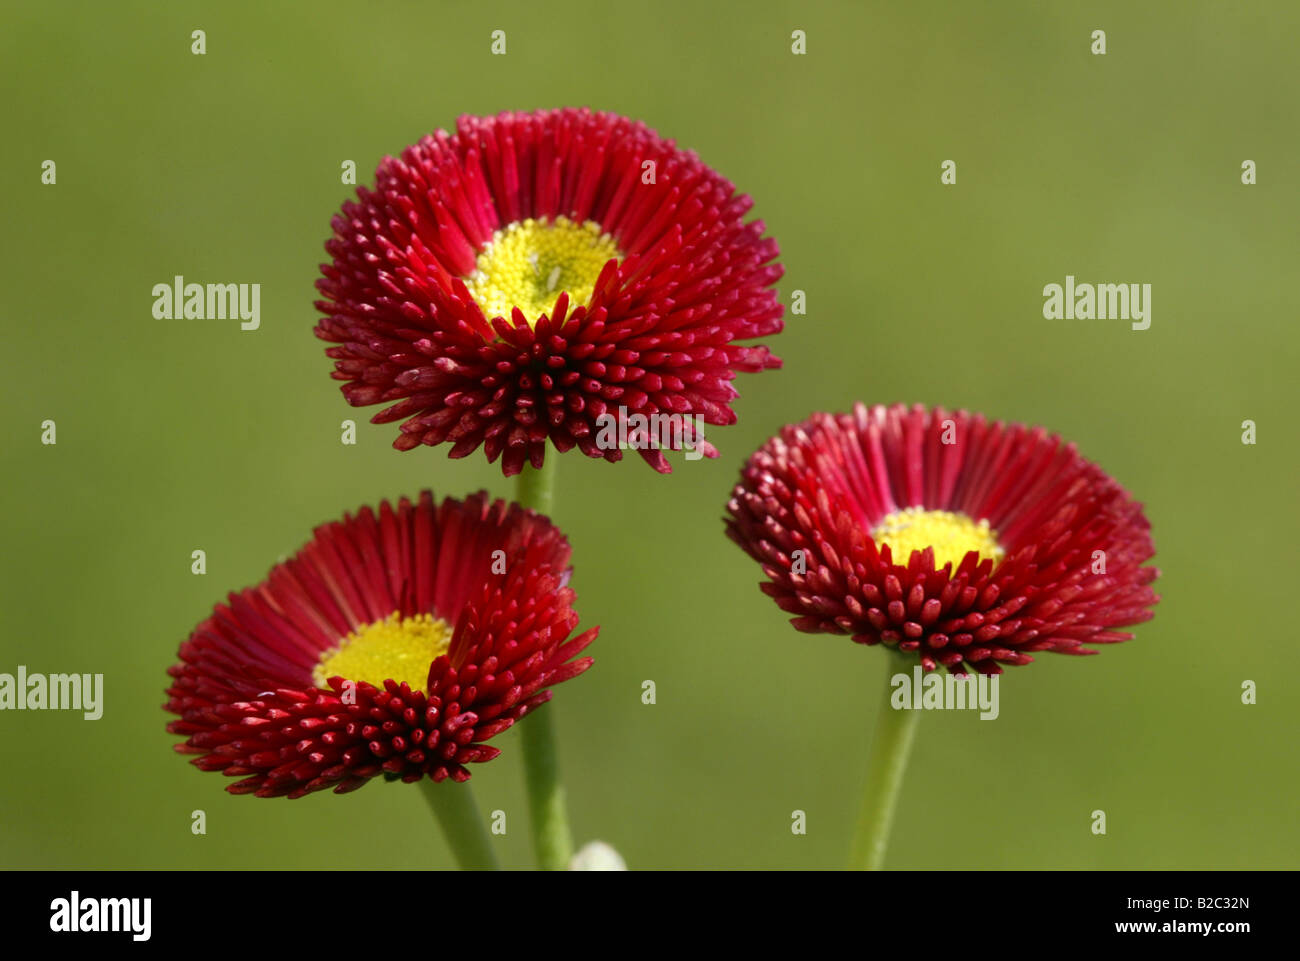 Common Daisy, Lawn Daisy (Bellis perennis), cultivated form, Heddesheim, Germany - Stock Image